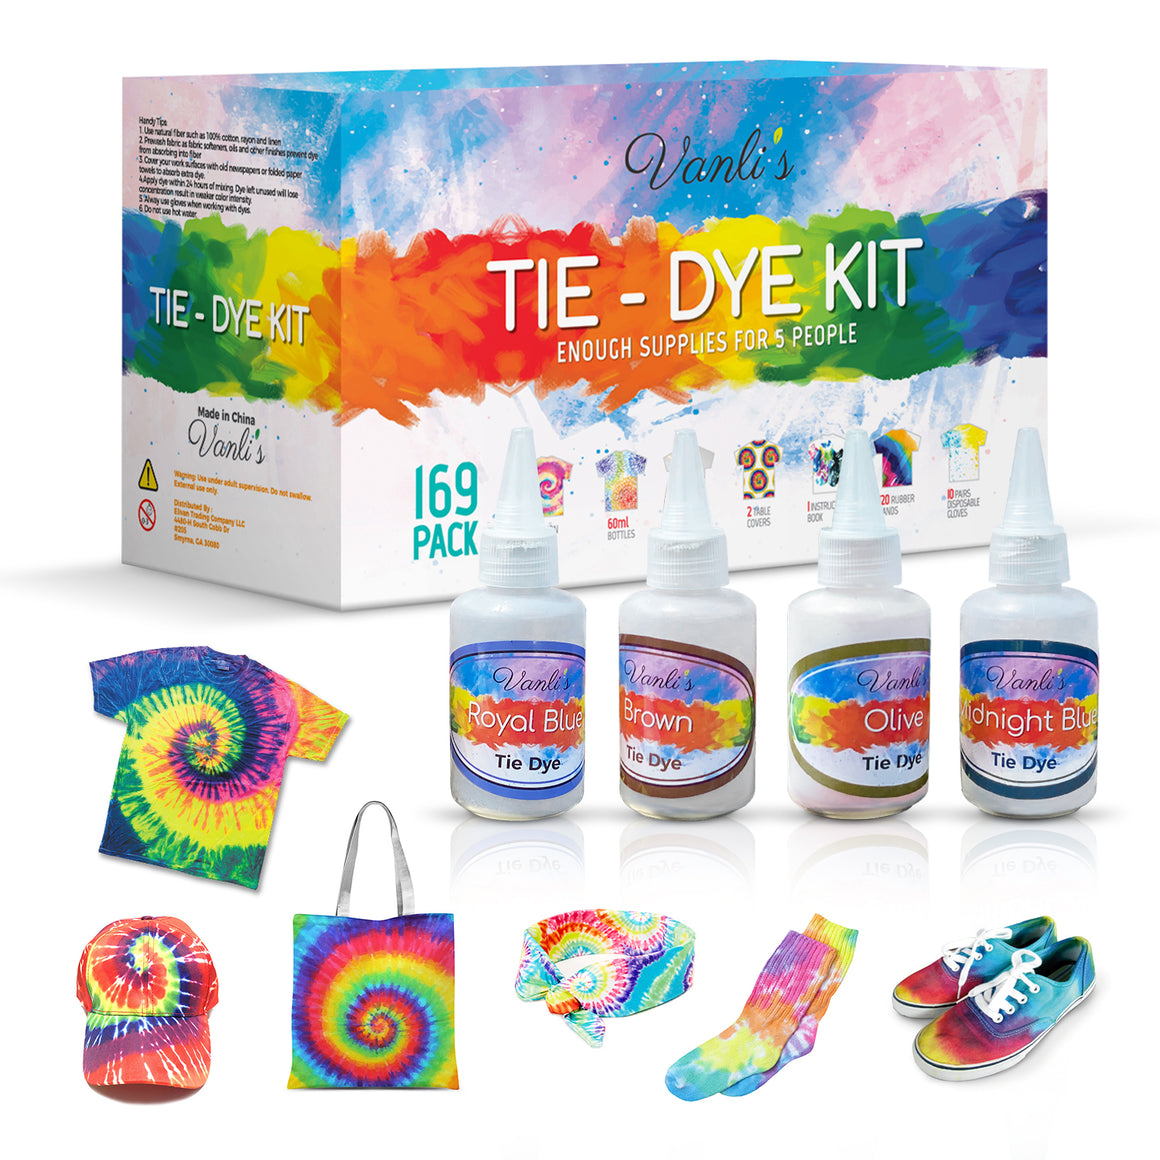 26 Colors Tie Dye Kit for Kids and Adults. 169 Pack Party Tie Die Supplies with Aprons, Gloves, Rubber Bands and Plastic Table Covers